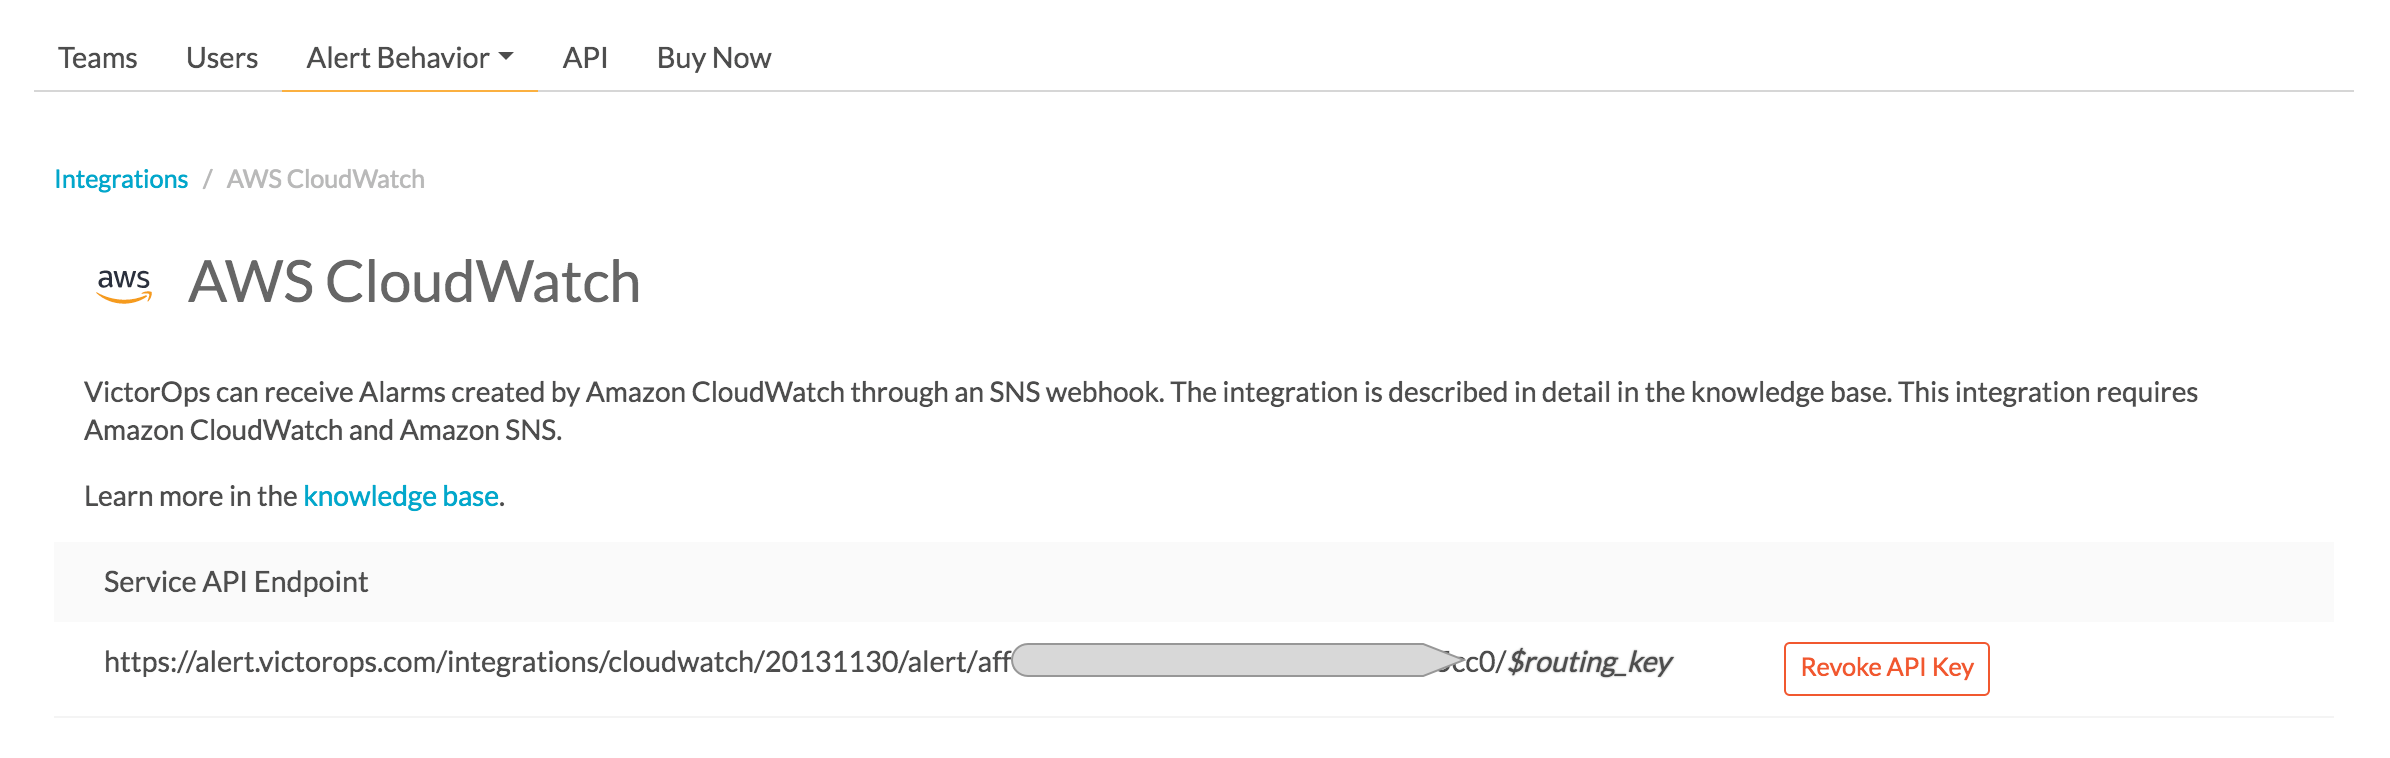 AWS Cloudwatch Integration Guide | VictorOps Knowledge Base